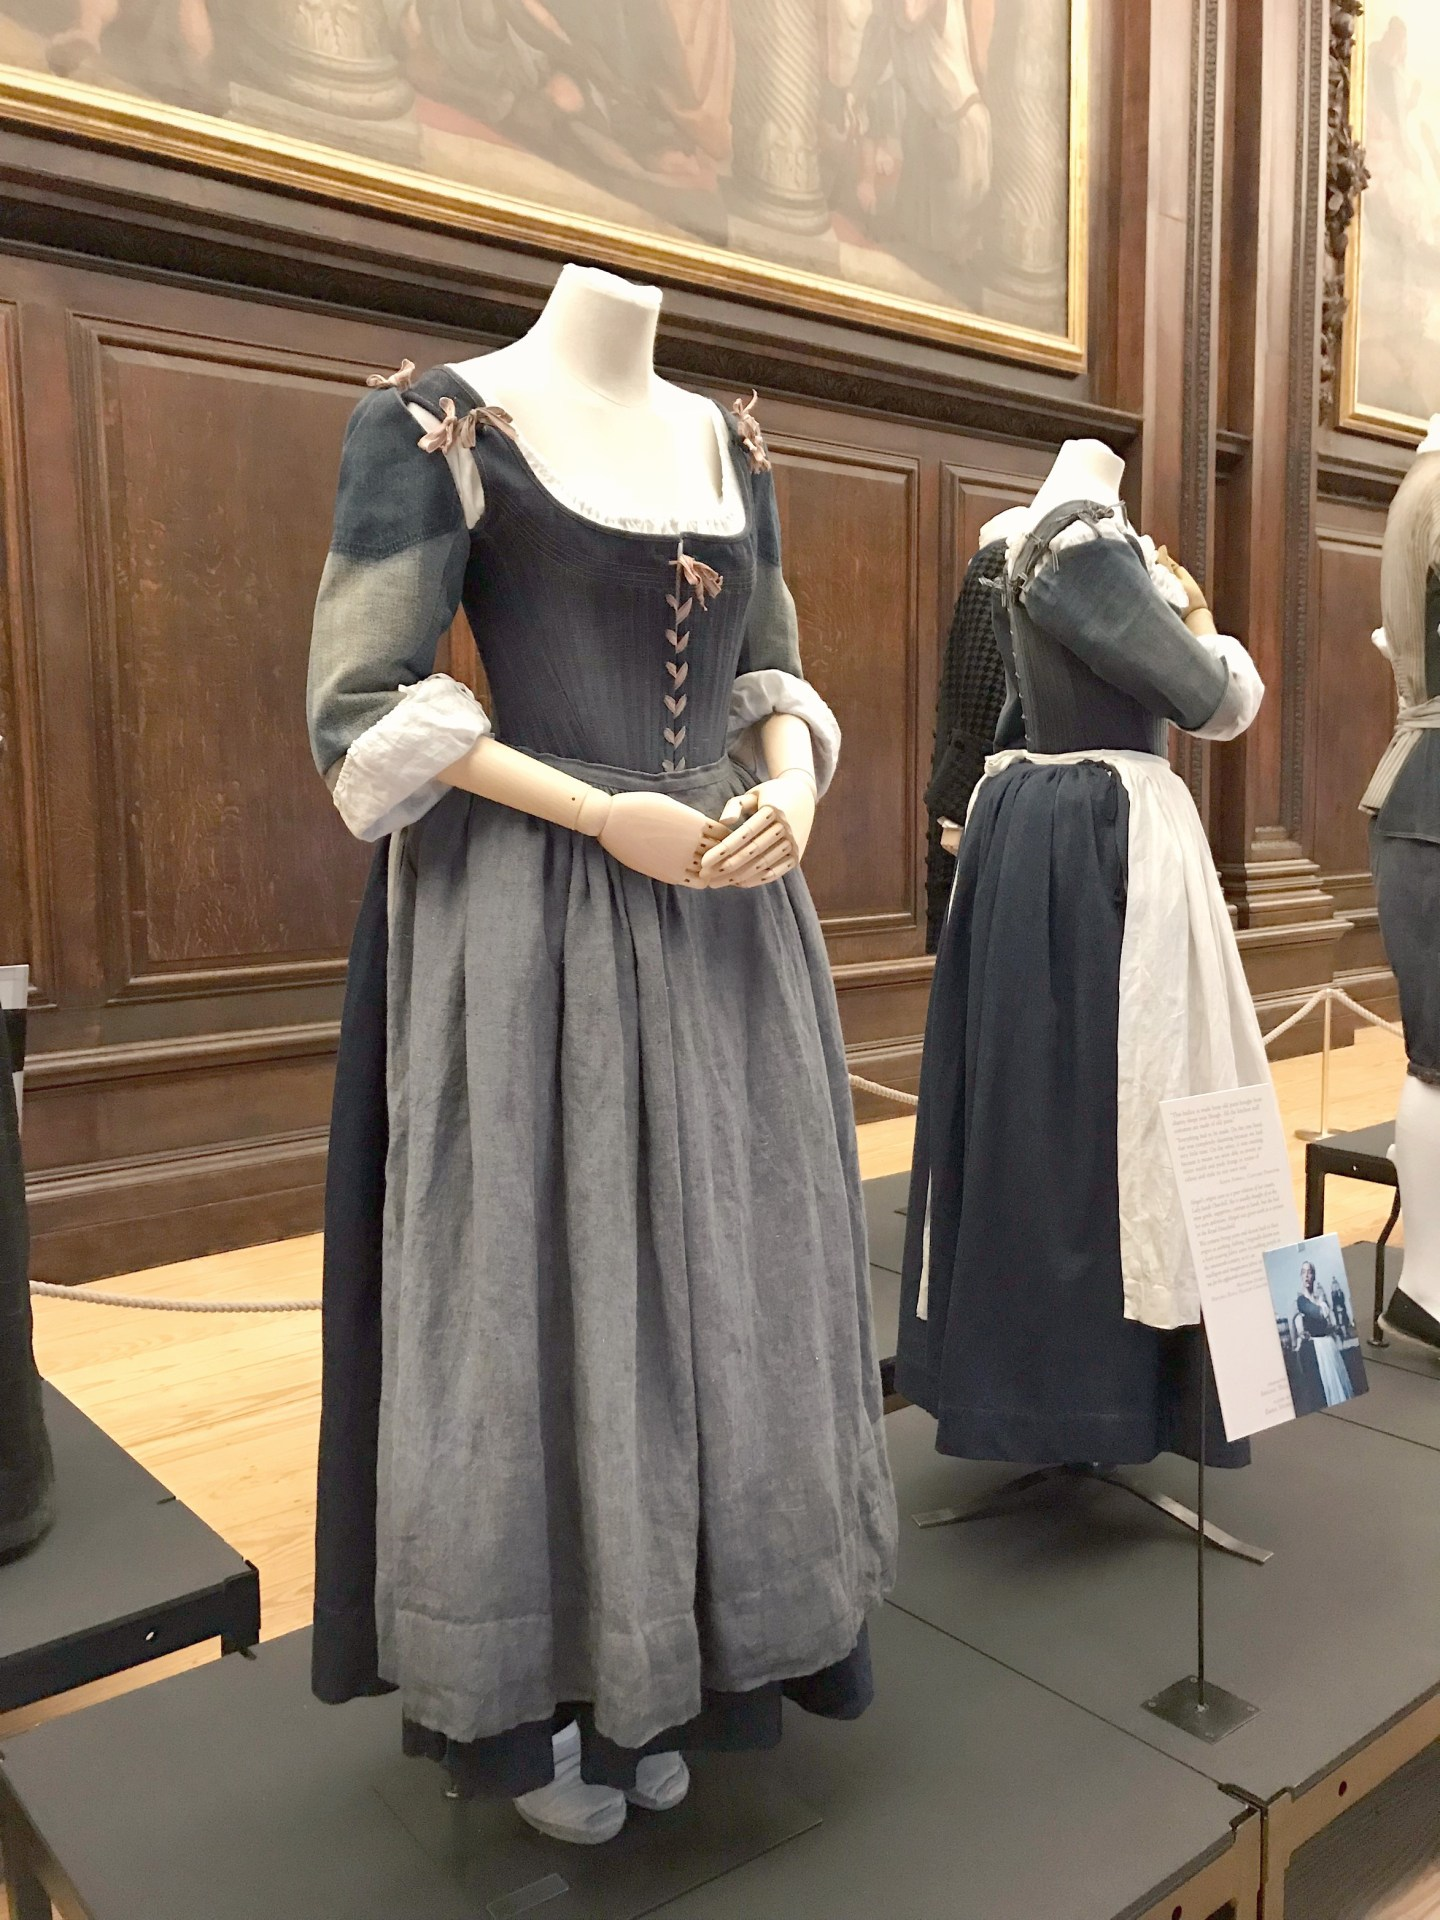 Seeing Costumes from The Favourite at Hampton Court Palace